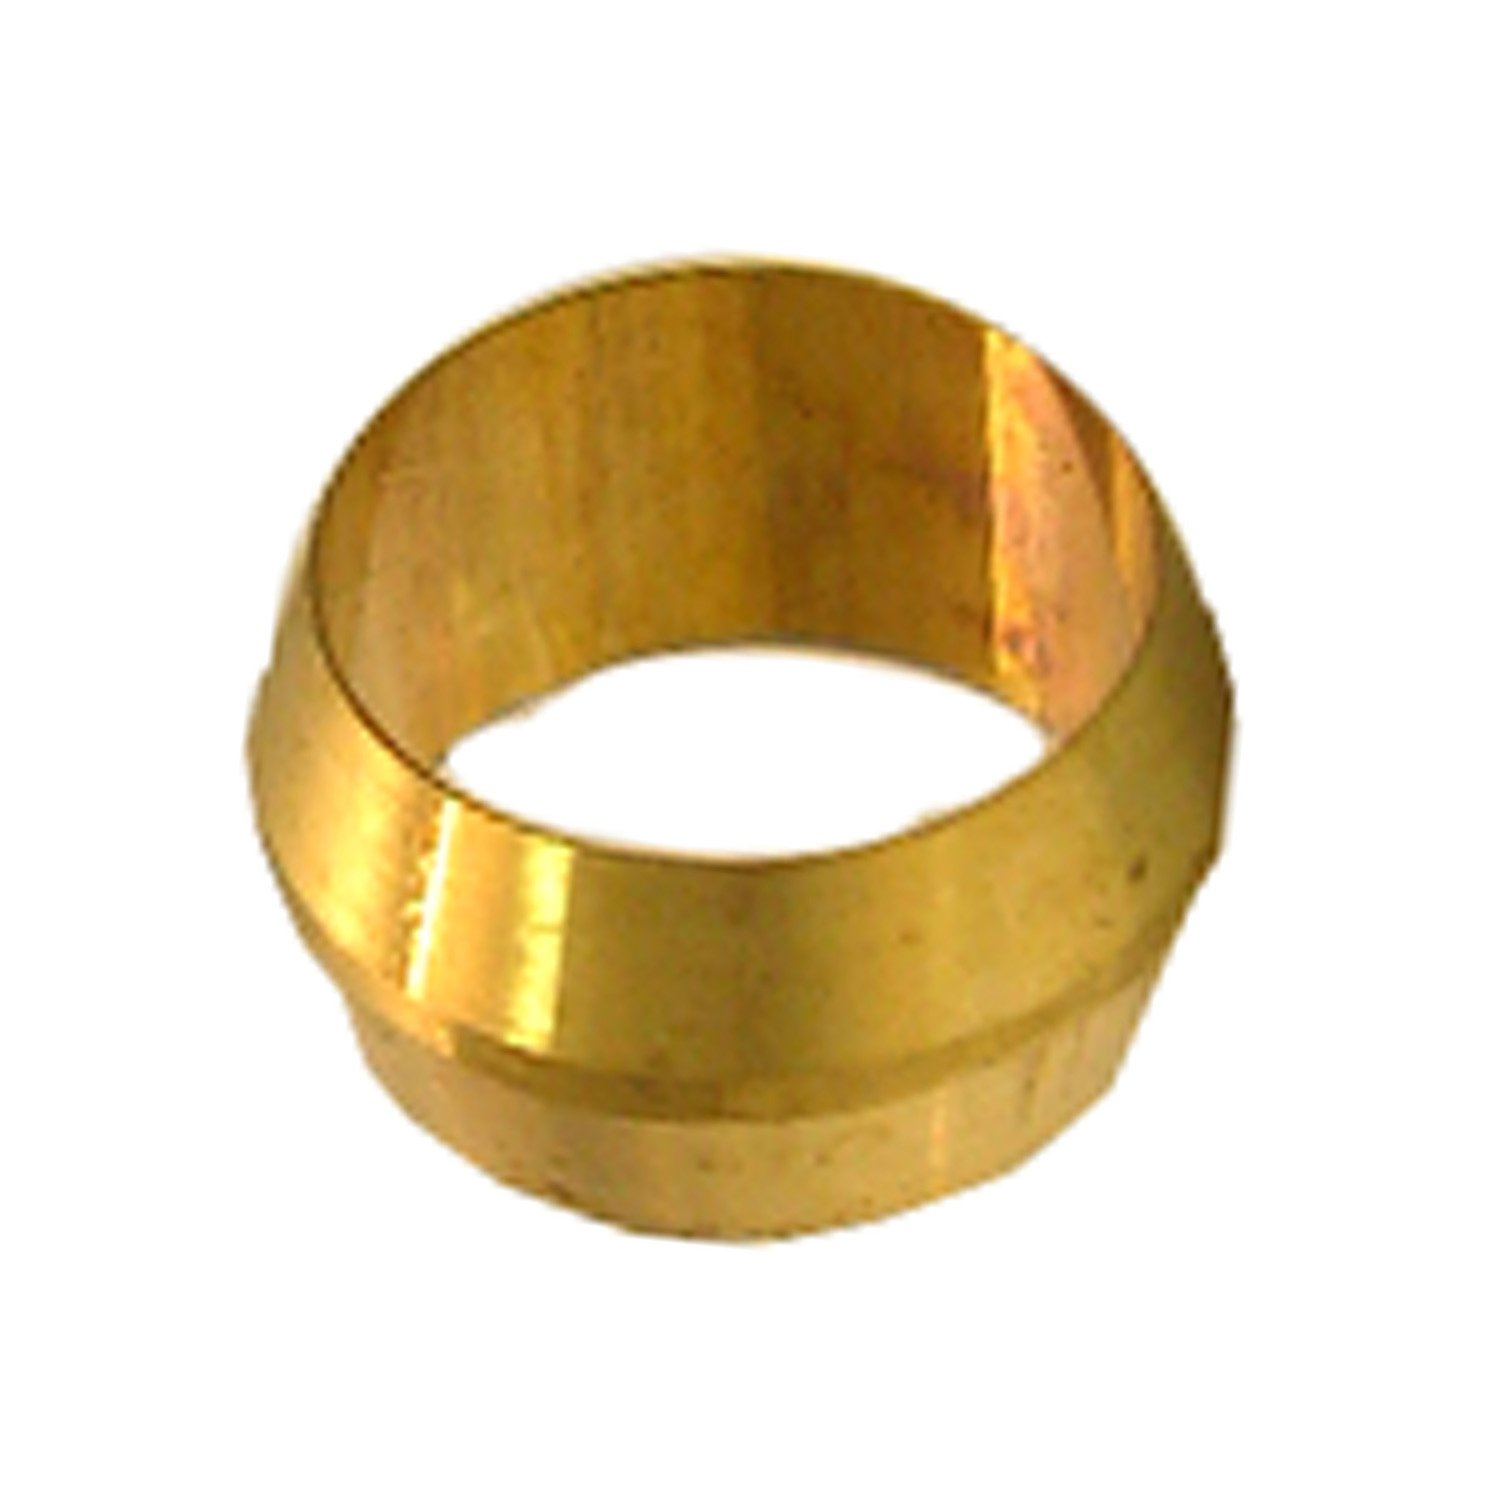 Lasco 17 6001 1 8 inch compression brass sleeves 2 piece for Poly sleeve for copper pipe